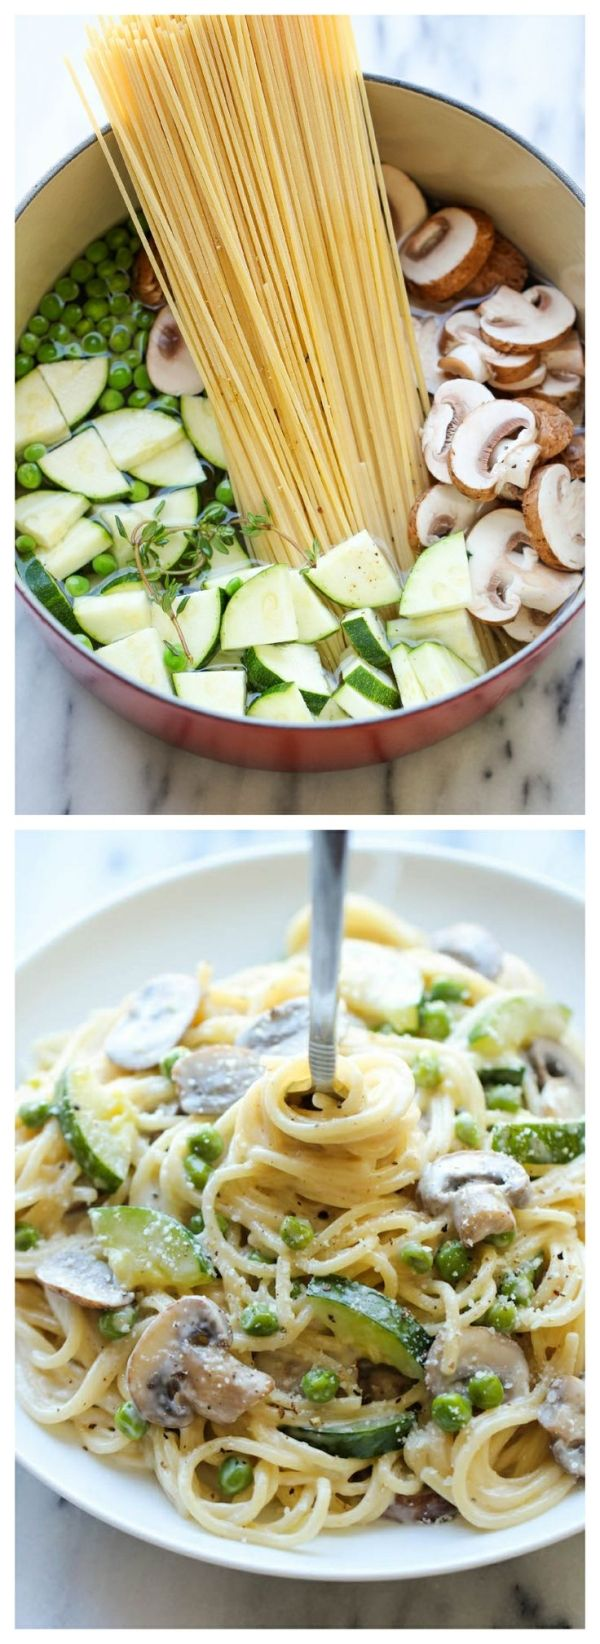 One Pot Zucchini Mushroom Pasta - A creamy, hearty pasta dish that you can make in just 20 min. Even the pasta gets cooked in the pot! by gr...